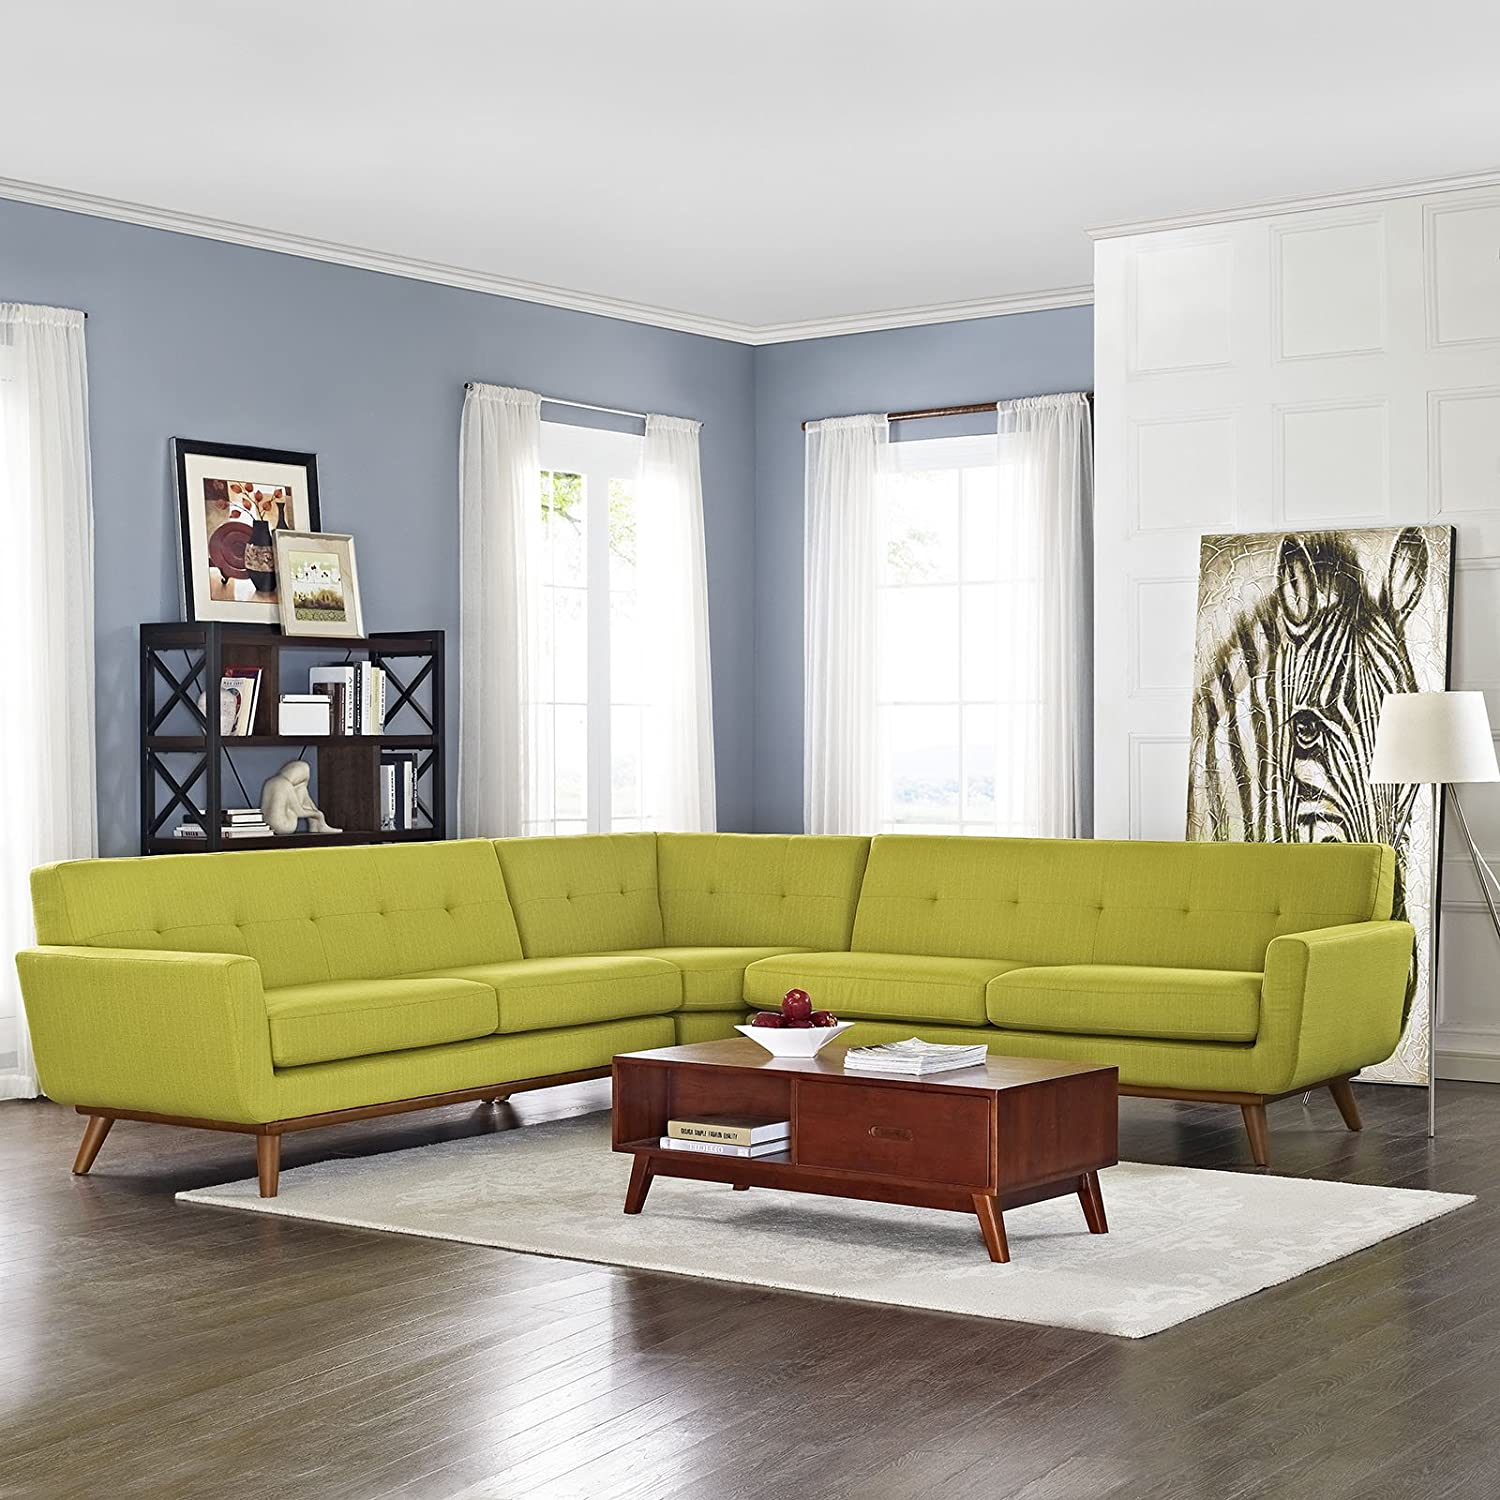 Engage L-Shaped Sectional Sofa - Wheat